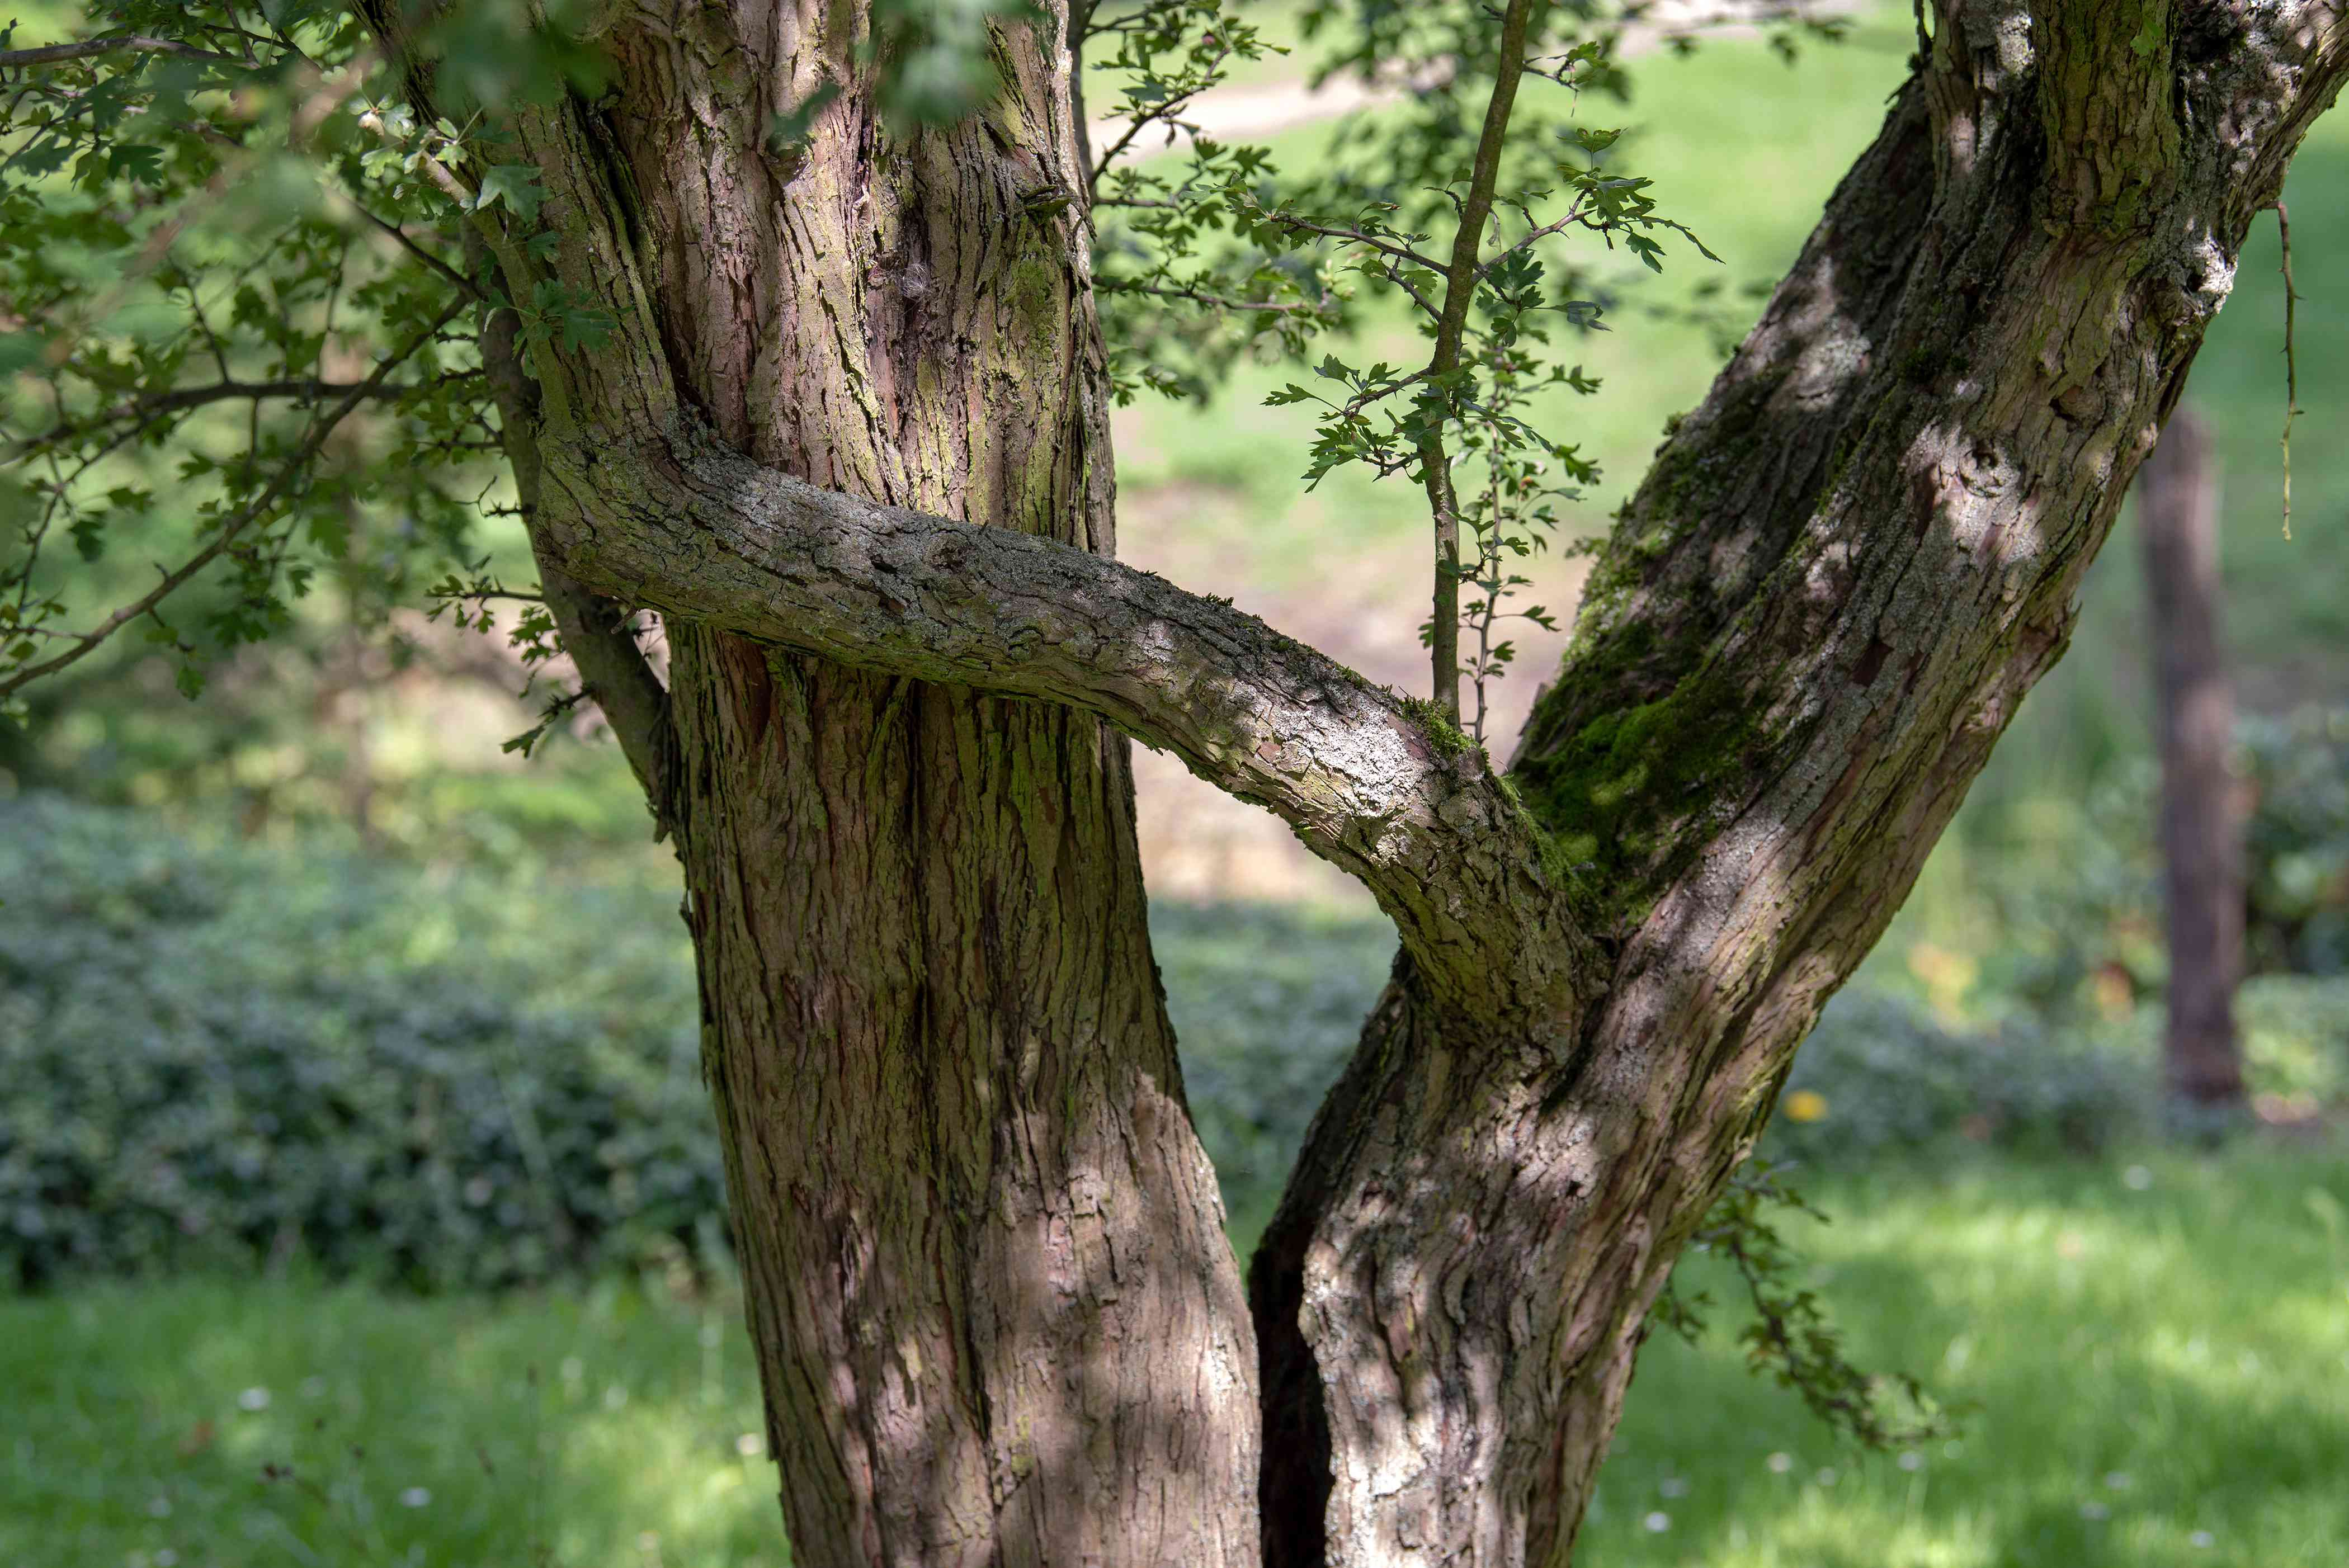 English hawthorn tree with separated trunks and ridged bark in shade